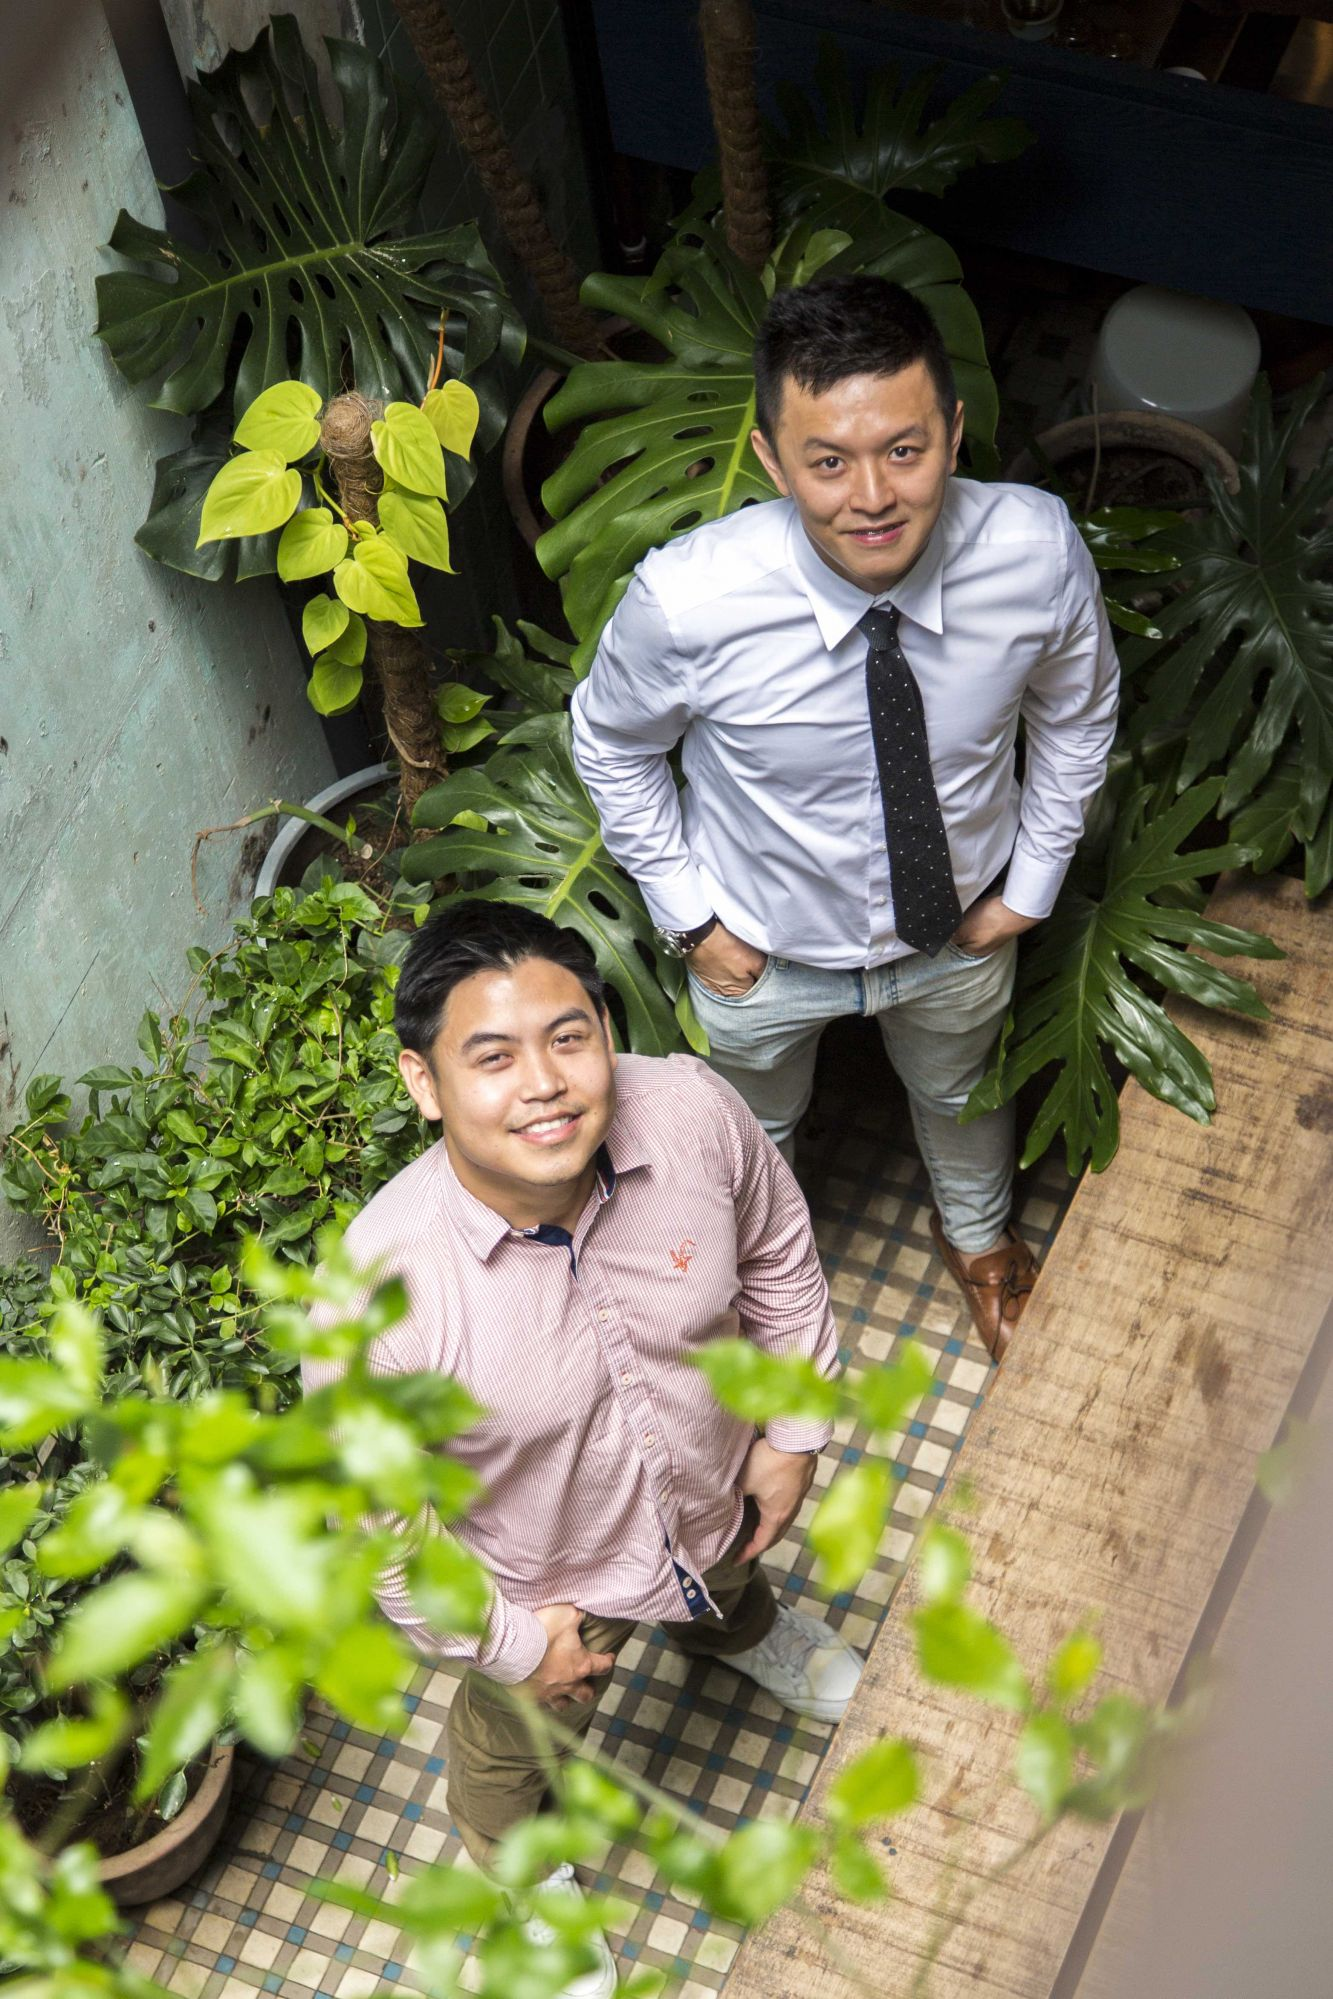 Ting Guo Yi and Tan Meng How, respectively Executive and General Manager of Straits Wine Co. Photo: Khairul Imran / Malaysia Tatler